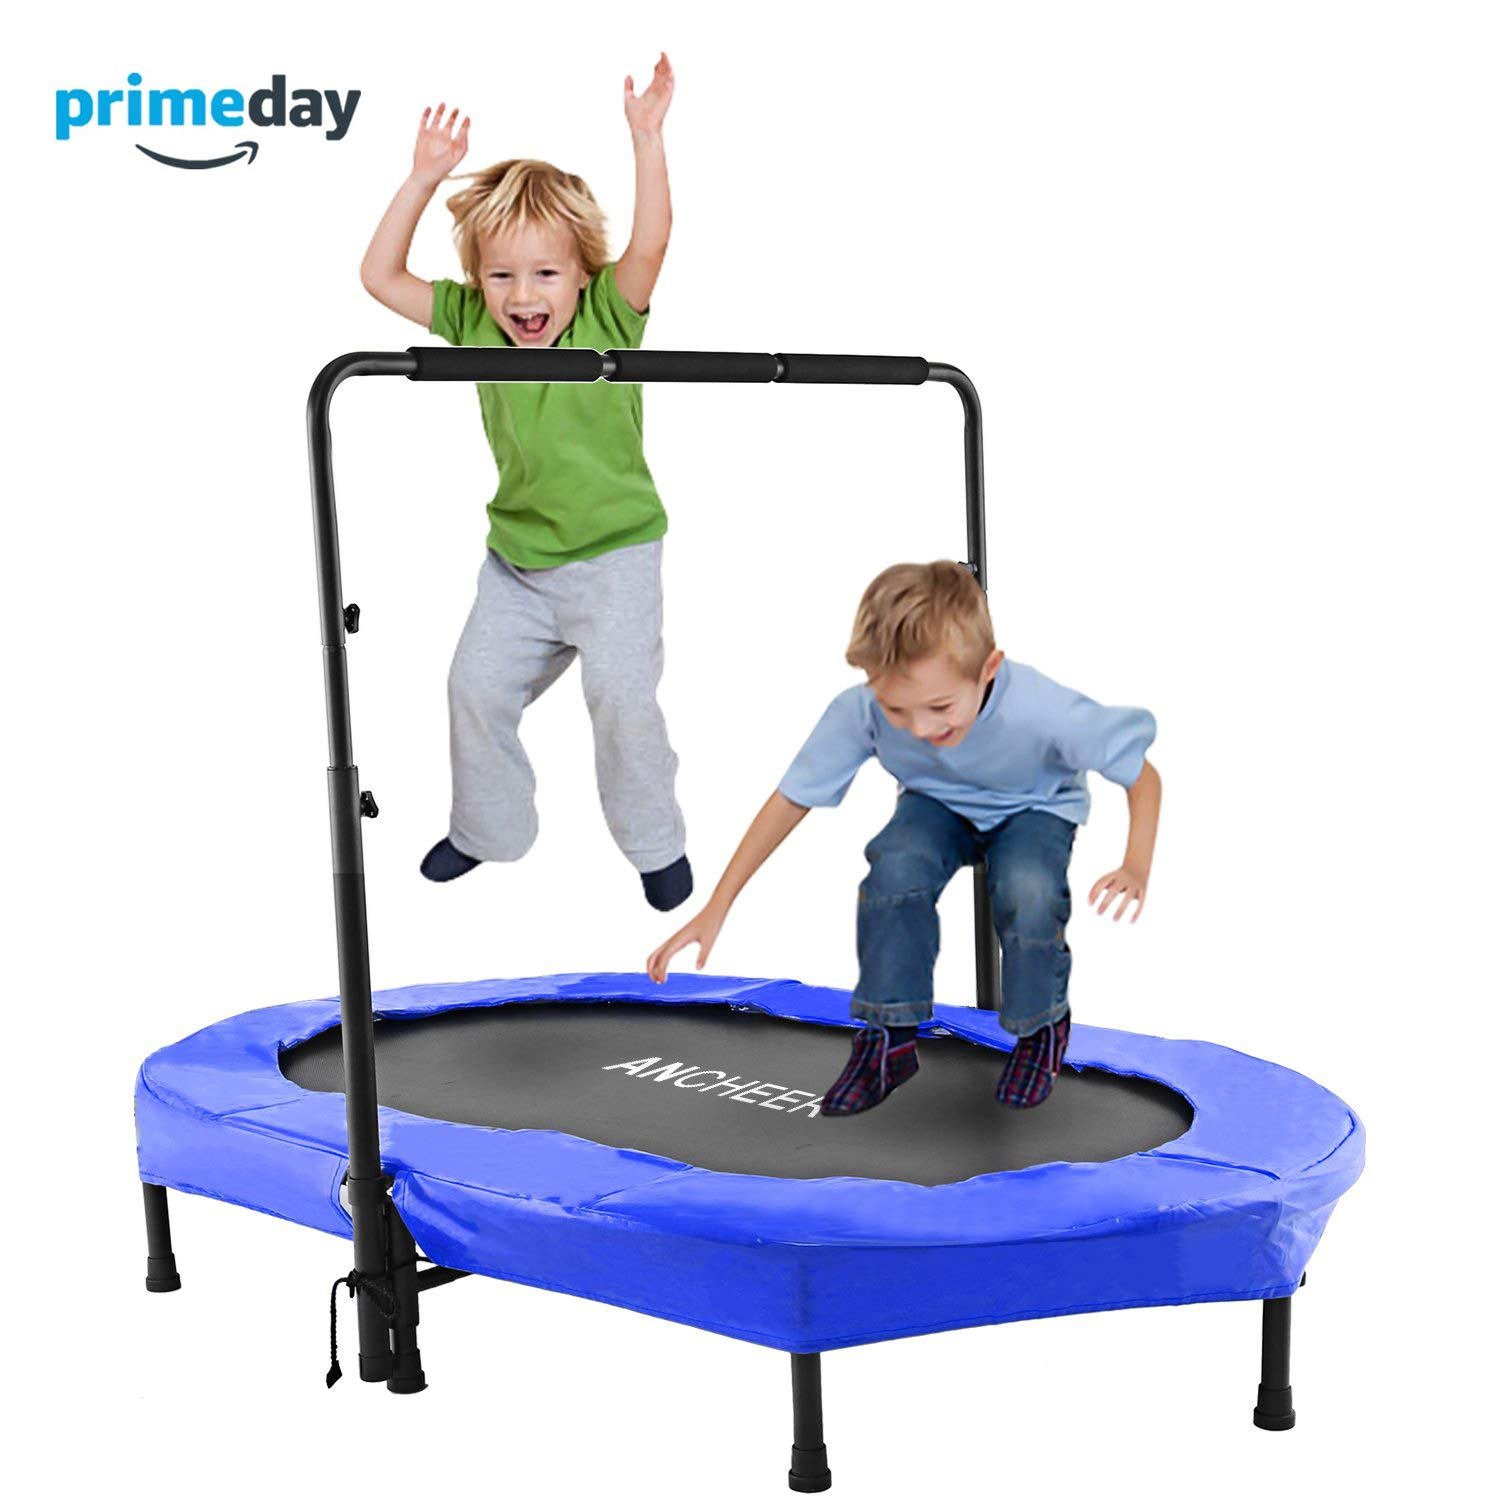 ANCHEER Mini Rebounder Trampoline with Adjustable Handle for Two Kids, Parent-Child Trampoline (Blue)